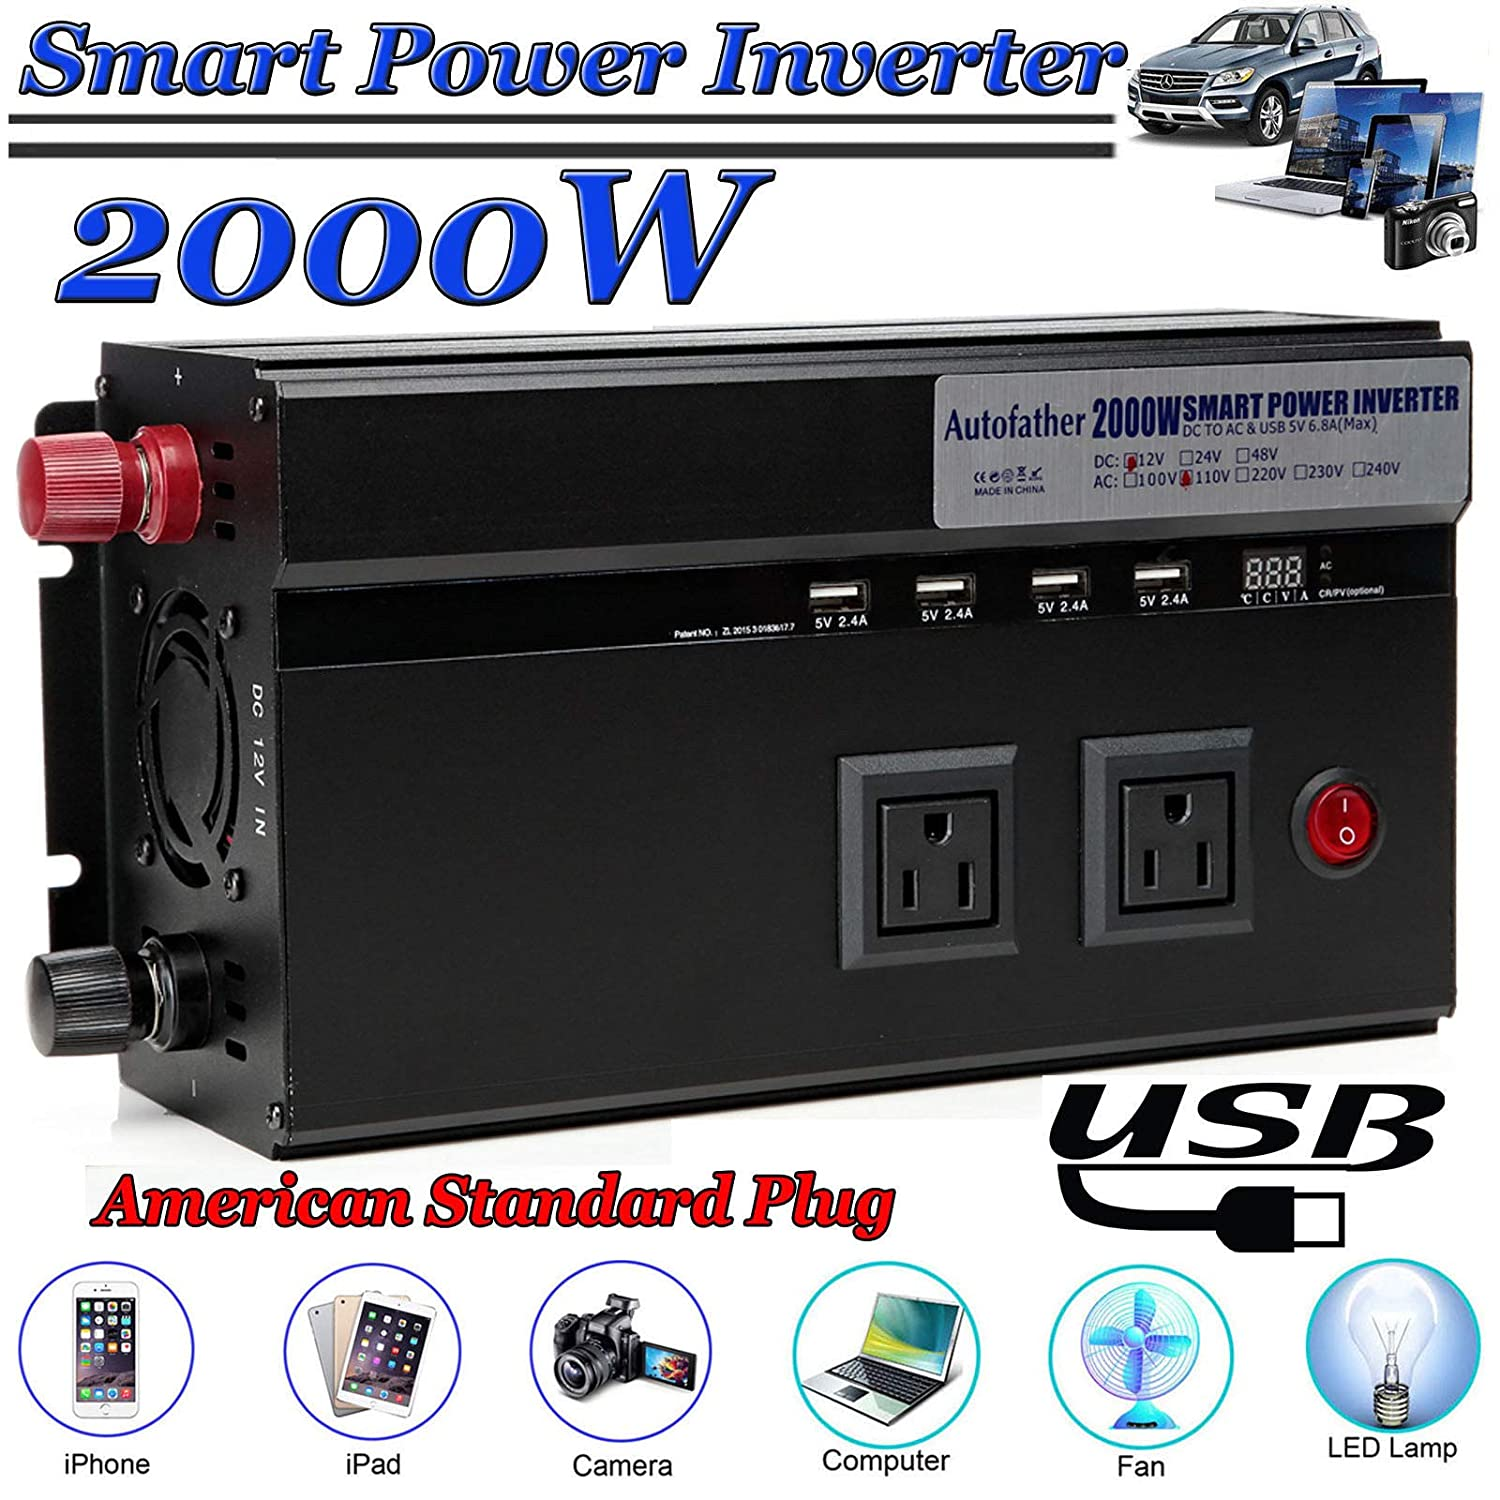 2000 Watt DC 12V Power Inverter Adapter Converter, Heavy Duty Dual 110V AC Outlets, Digital Display Automotive Back Up Power Supply Car Inverter with Two Cigar Battery Connector Line